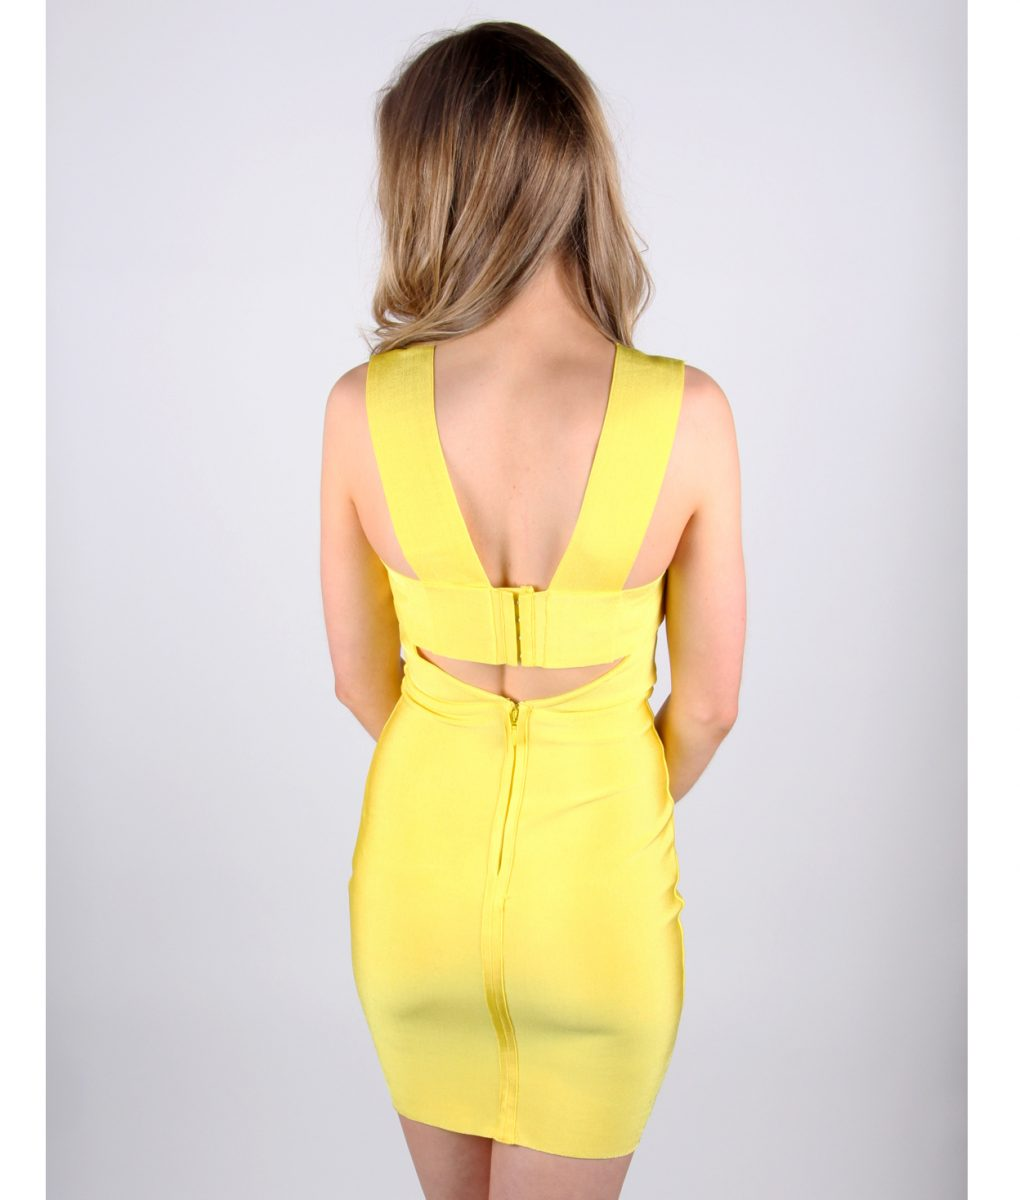 Alila Yellow Bodycon Bandage Dress By Wow Couture.